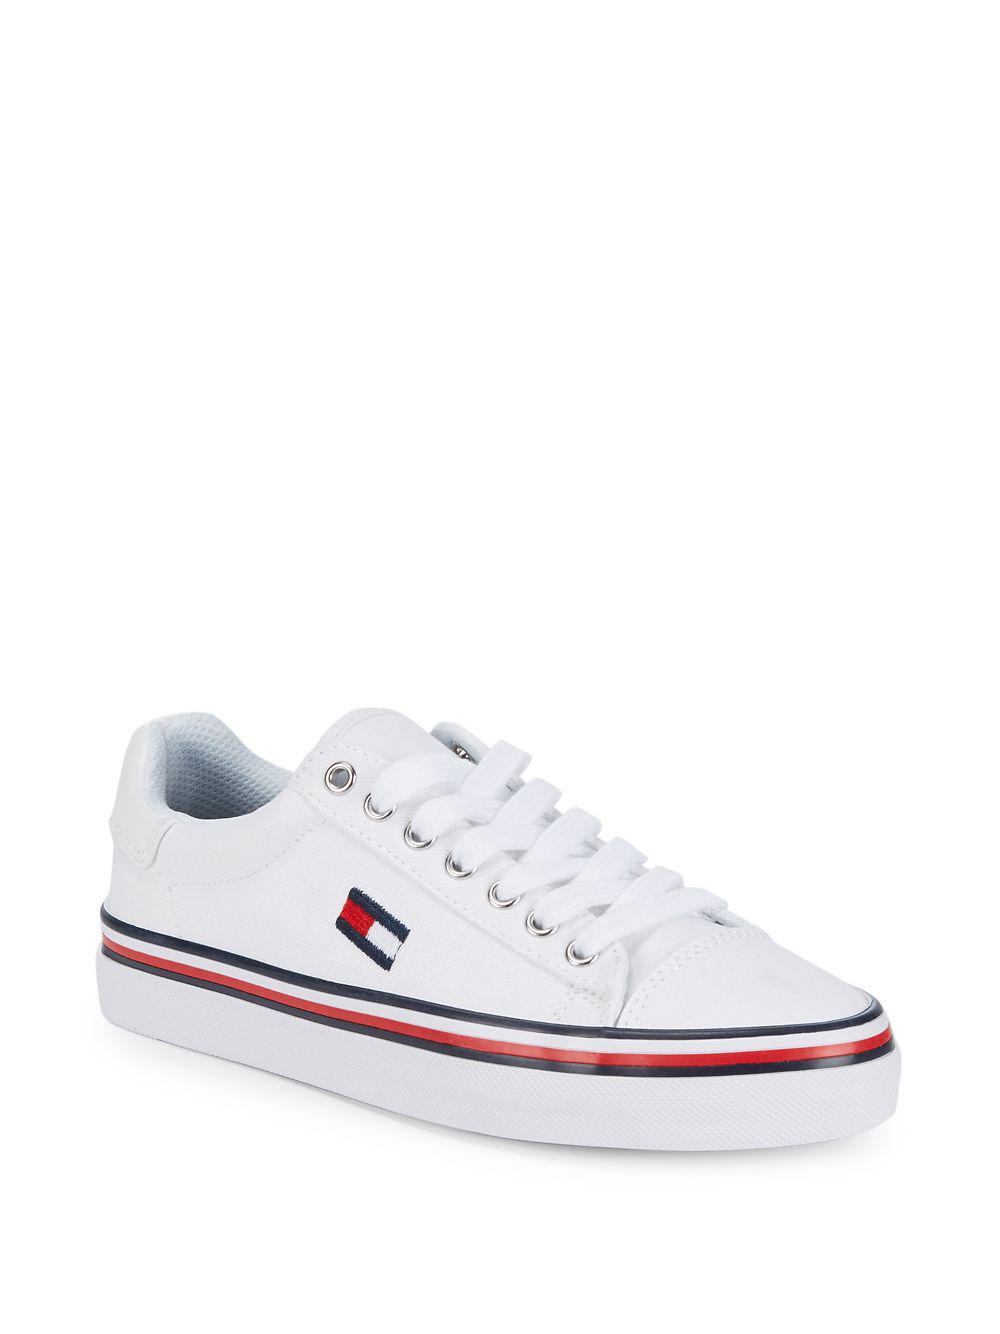 Tommy Hilfigerlogo lace-up sneakers Prix Bon Marché Authentique sAs8f4p